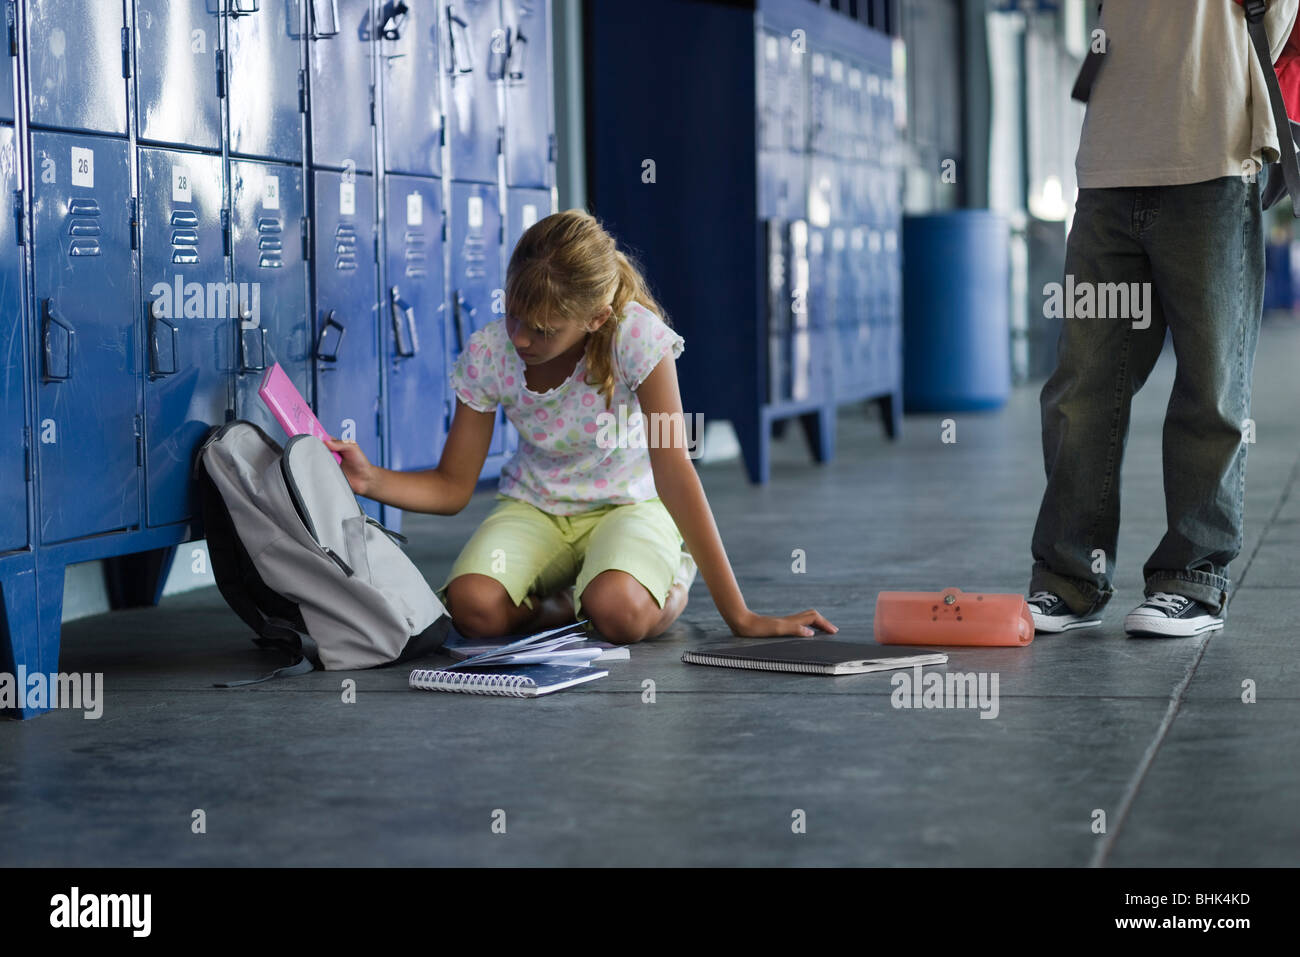 Junior high student picking up dropped school supplies, boy standing by watching - Stock Image